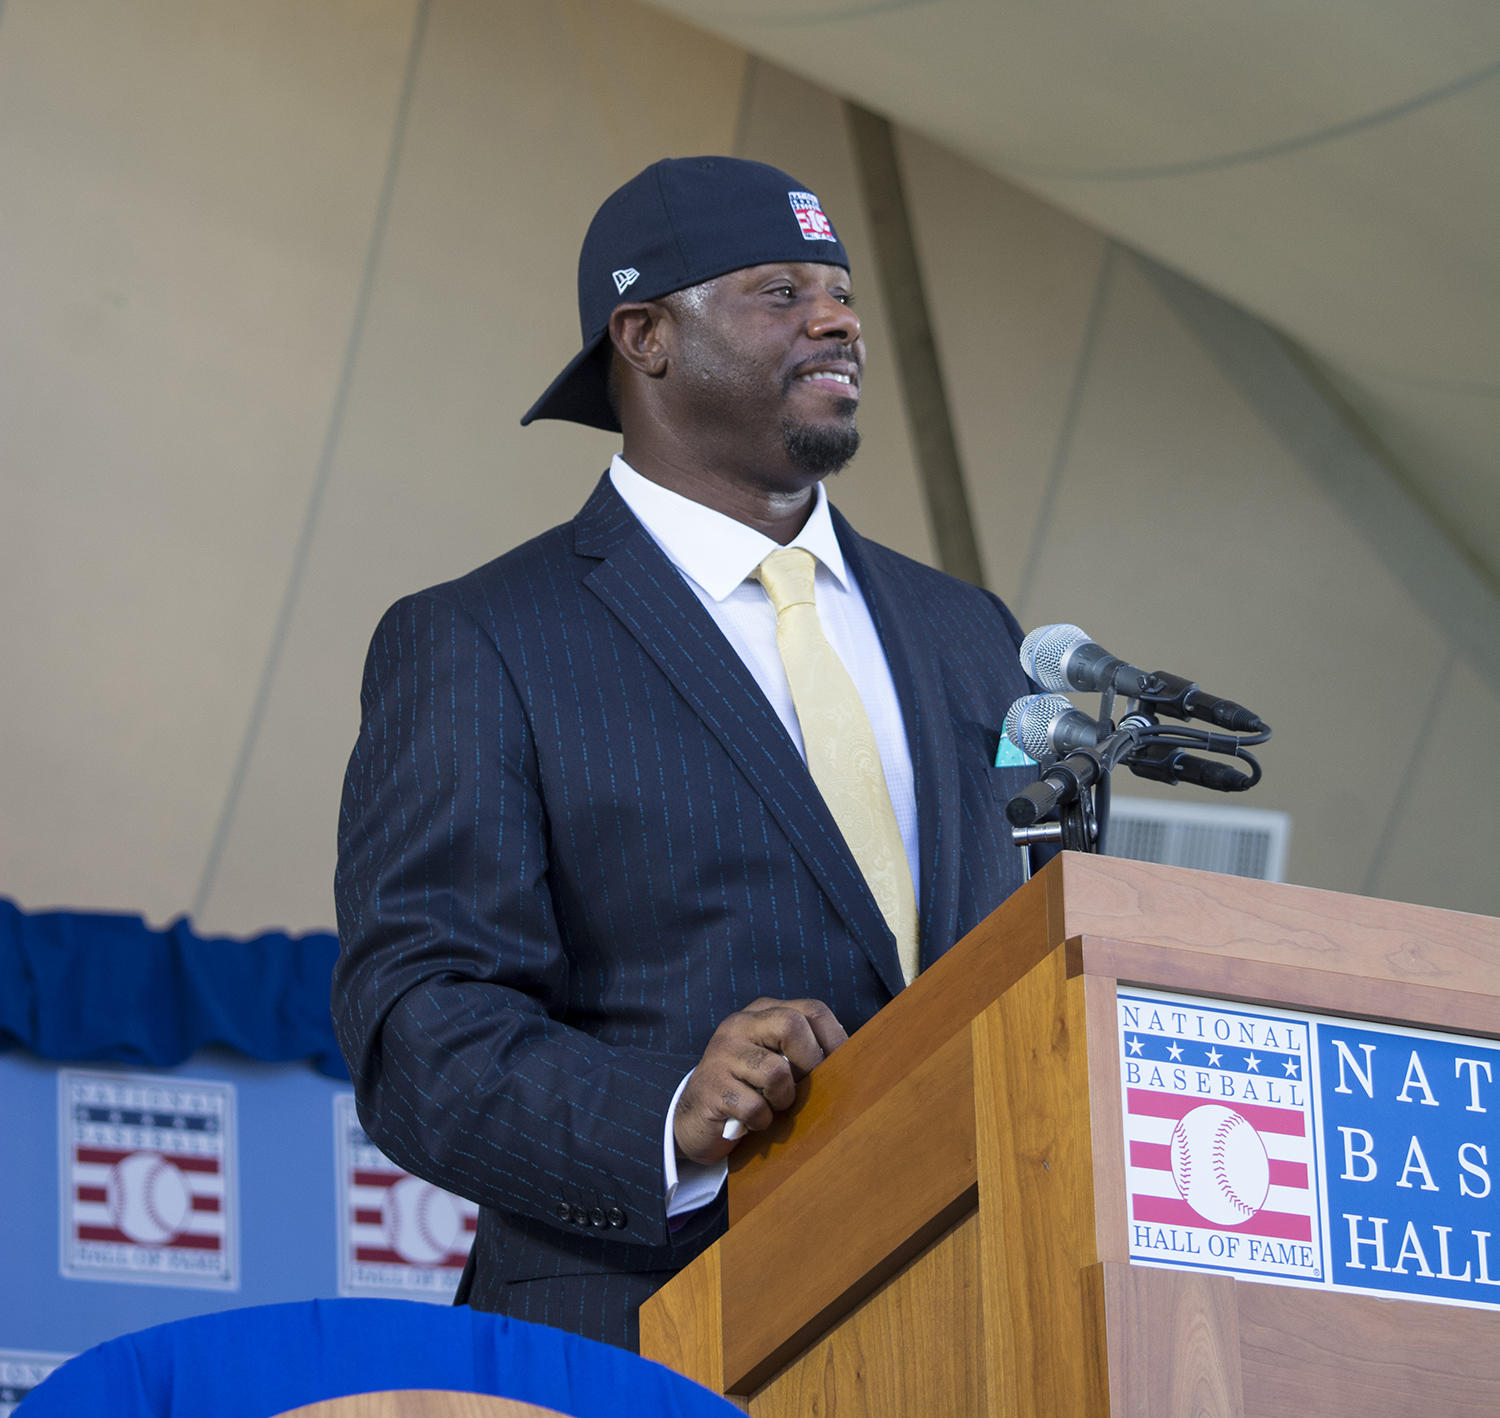 Hall of Fame Class of 2016 member Ken Griffey Jr. concluded his speech by sporting his trademark look -- a backwards hat. (Milo Stewart Jr. / National Baseball Hall of Fame)